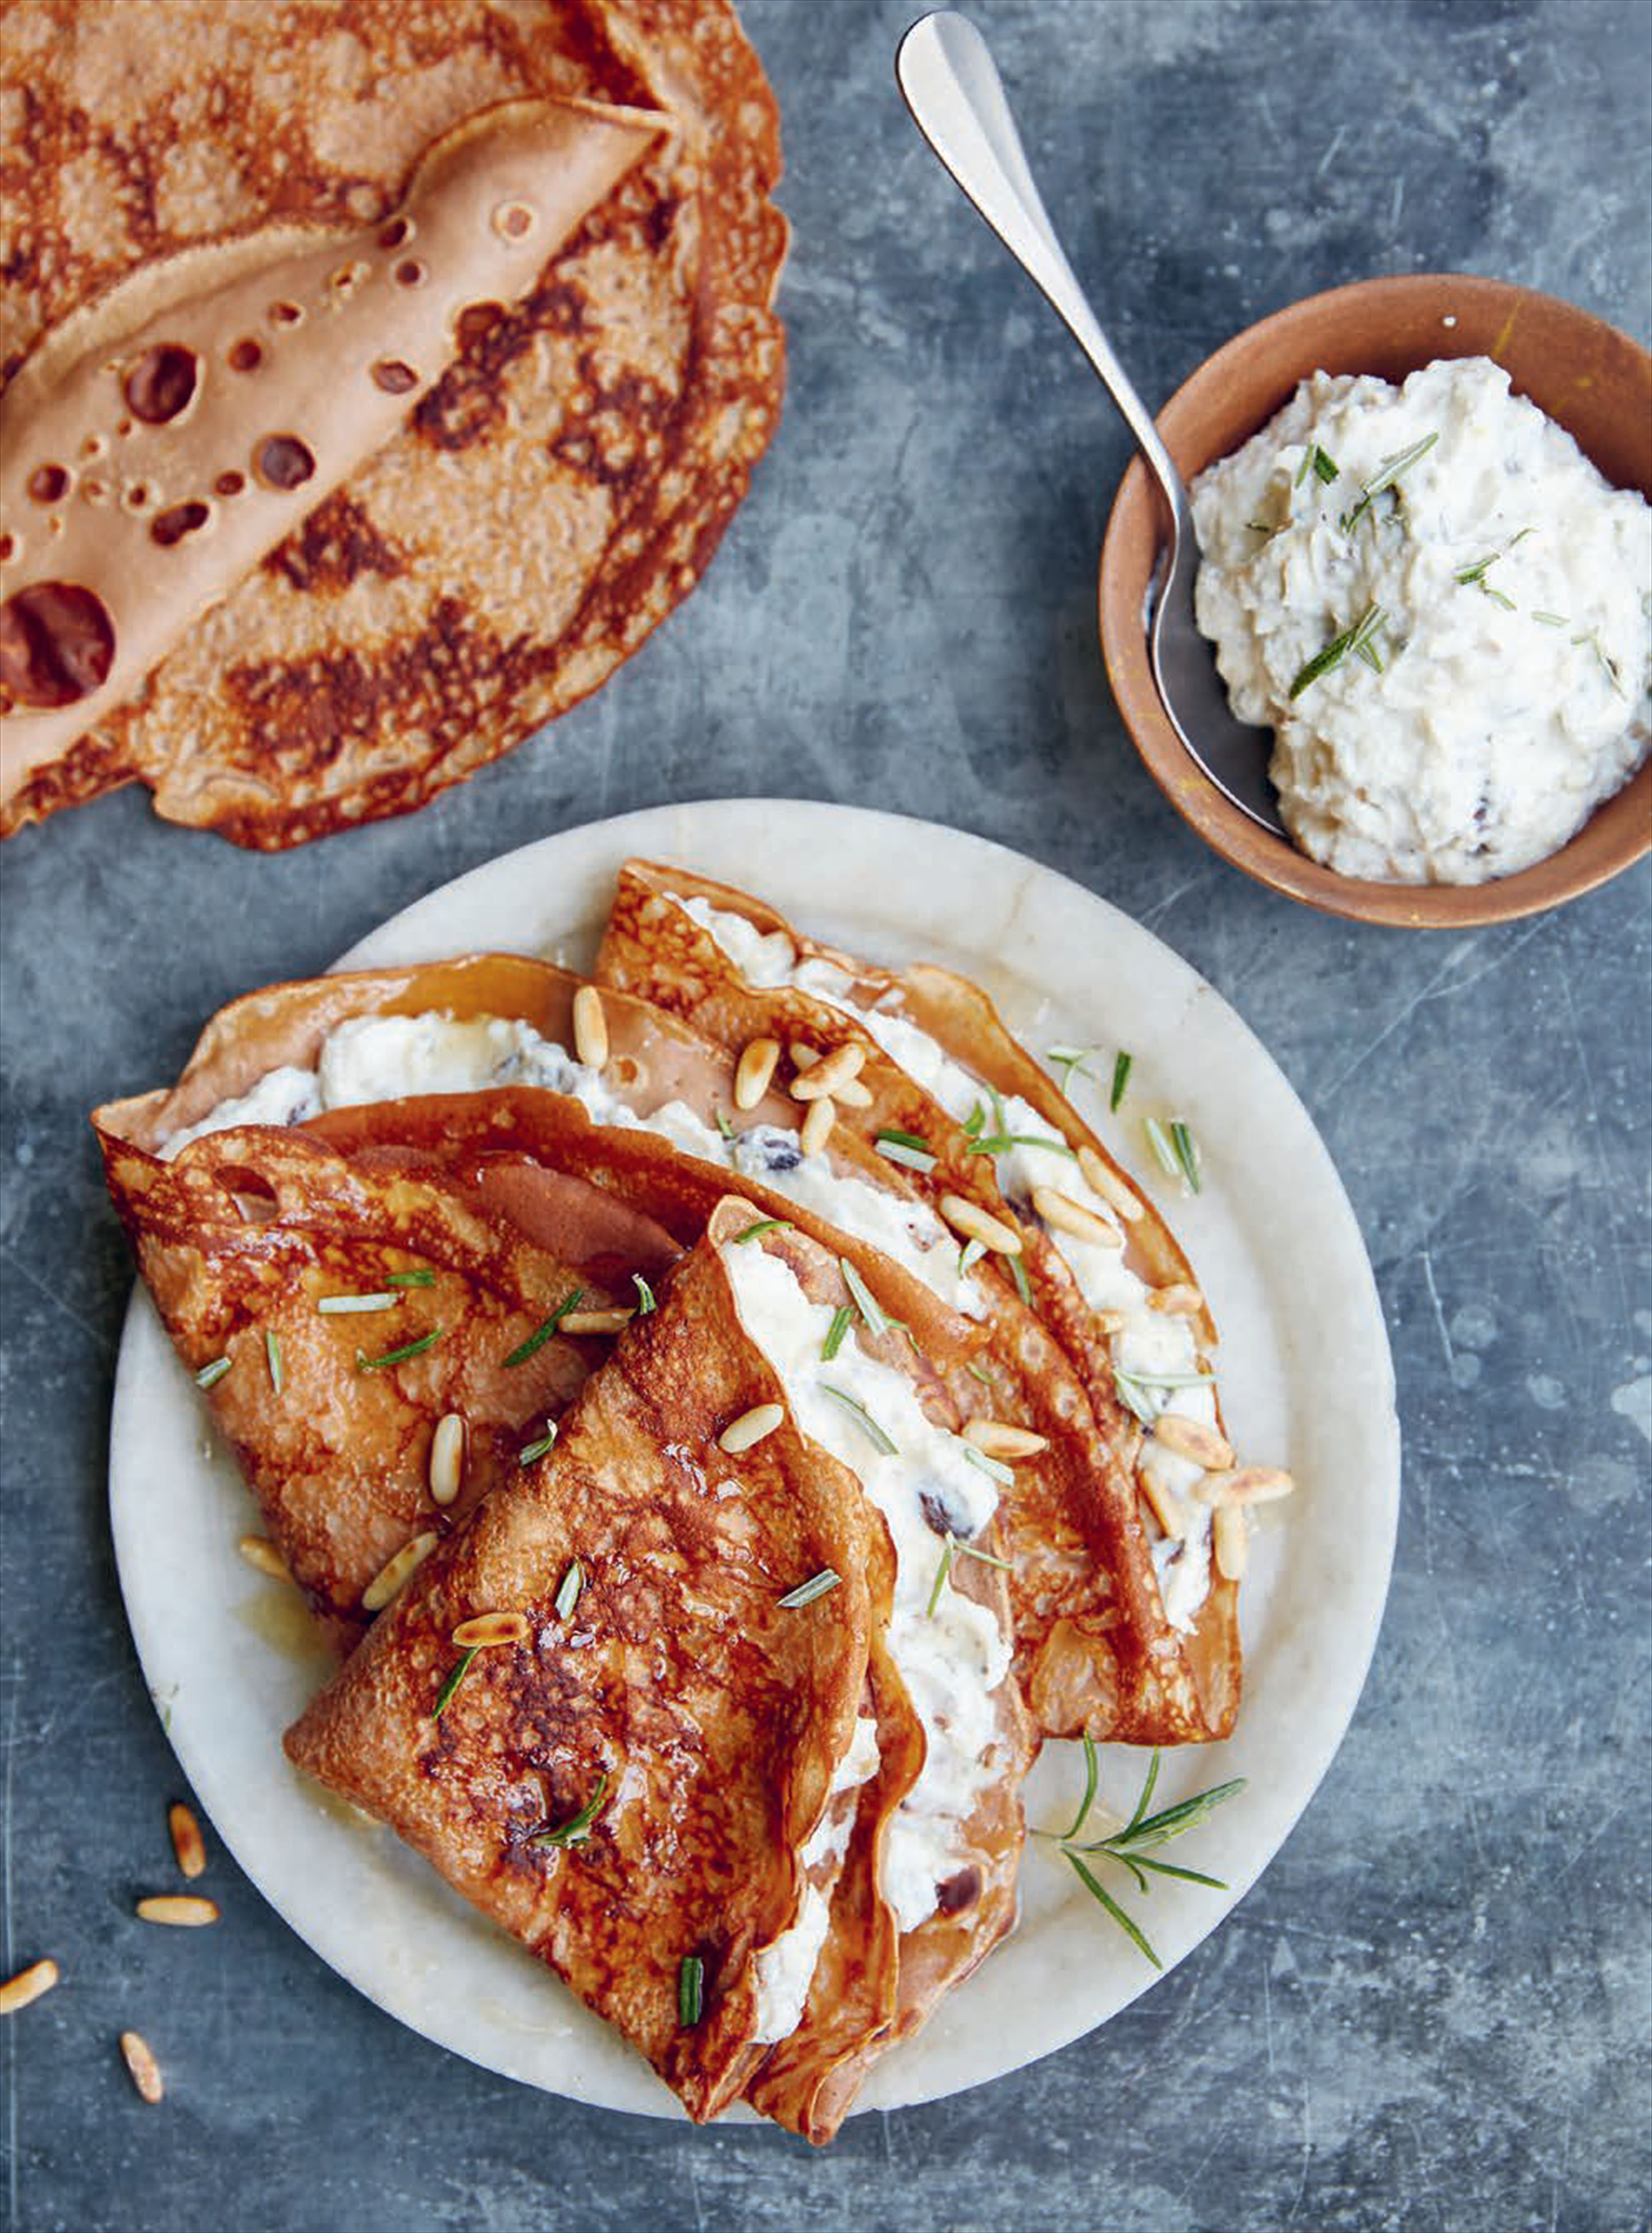 Chestnut pancakes filled with ricotta & lemon